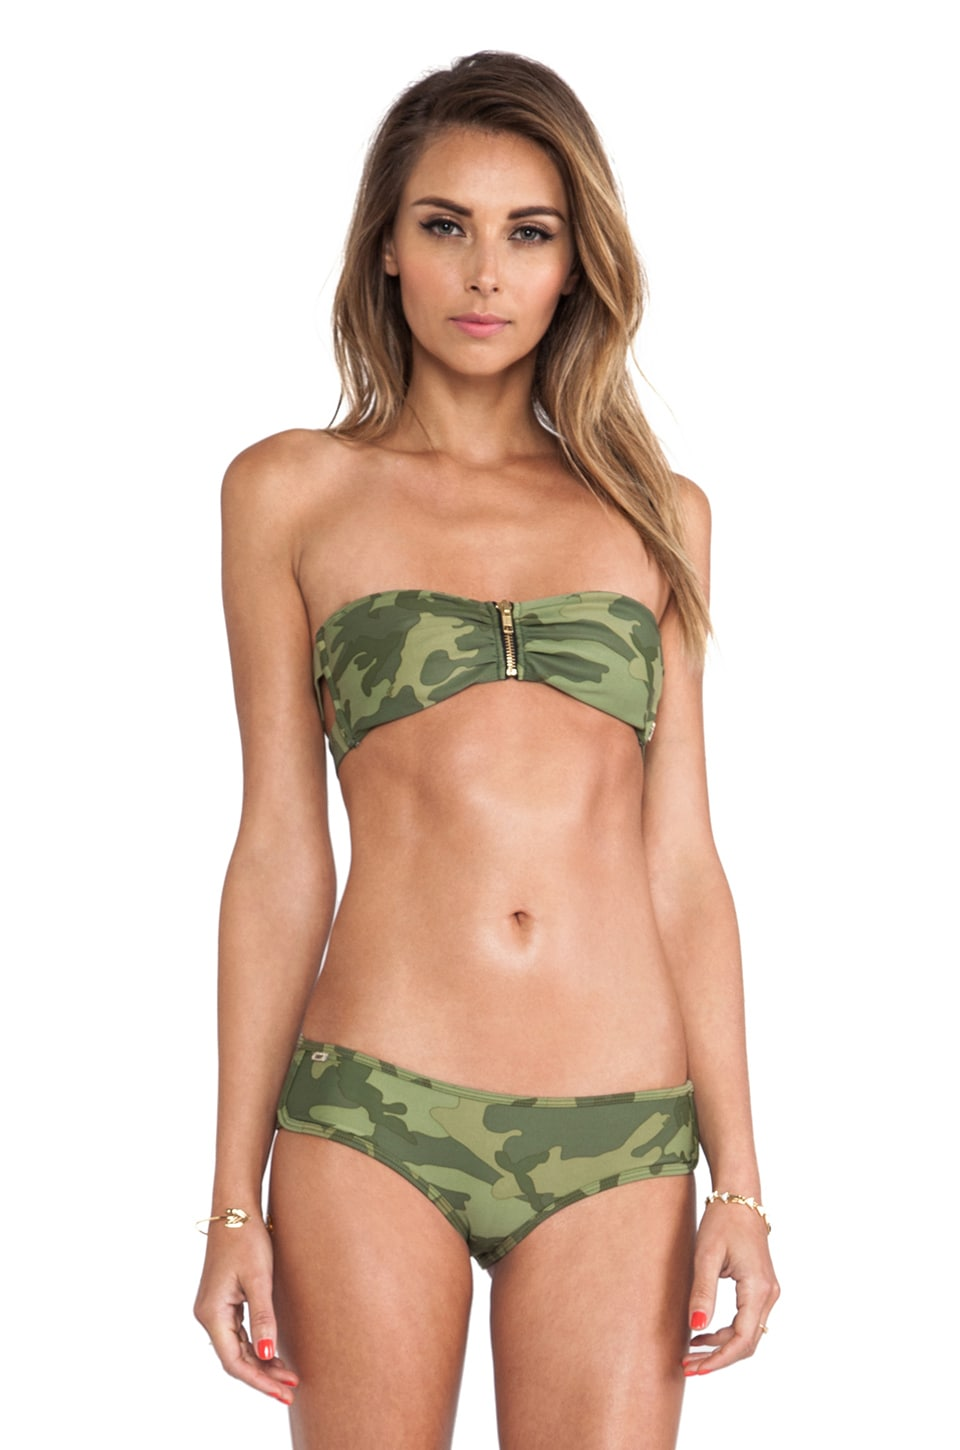 Obey Wasted Years Bandeau Top in Field Camo